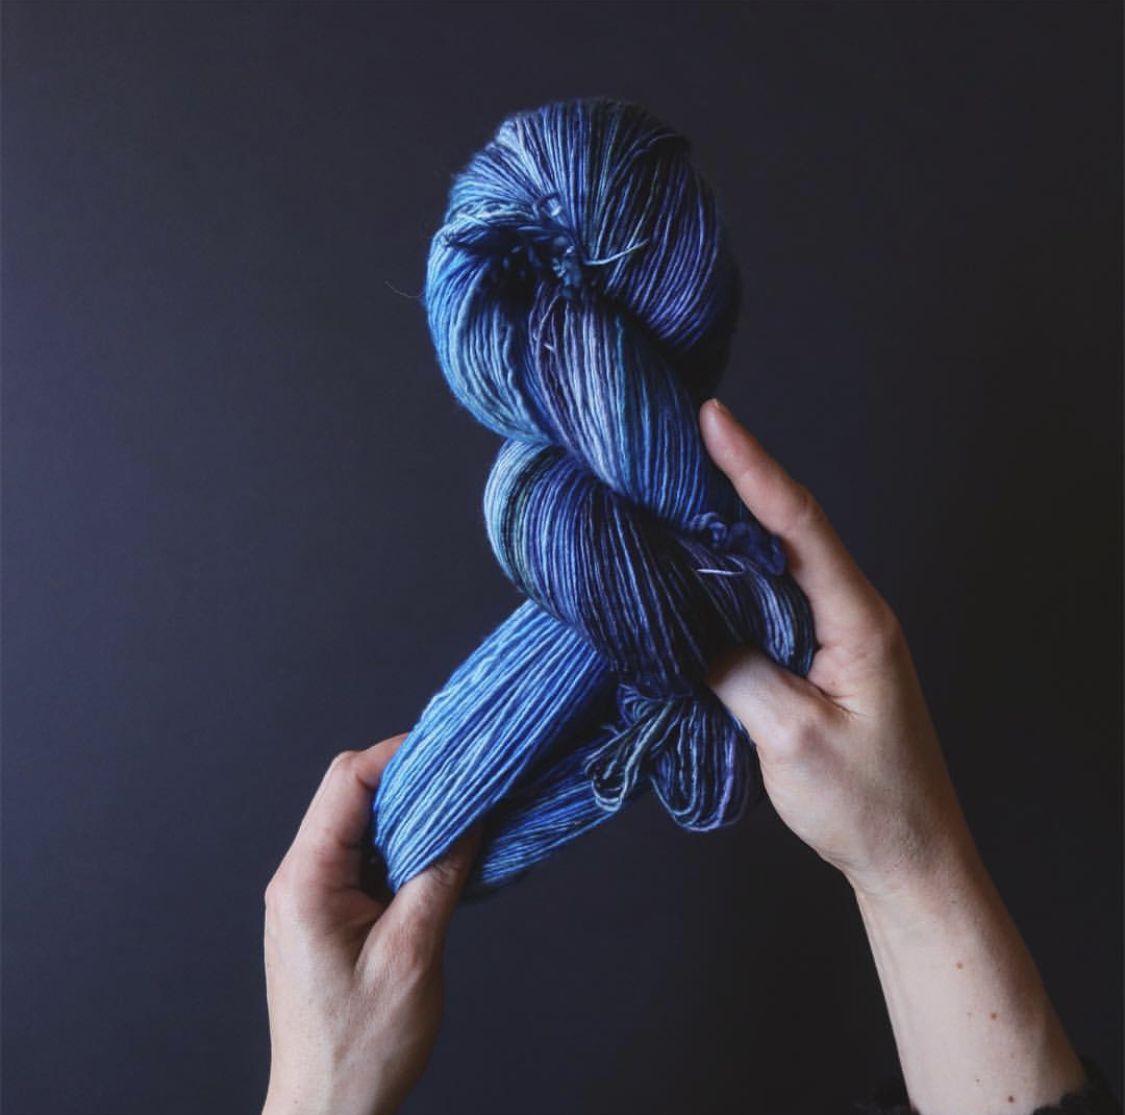 Tayler's hands stretch out a beautiful blue tonal skein; Photo by Tayler Earl of Fiber for the People®